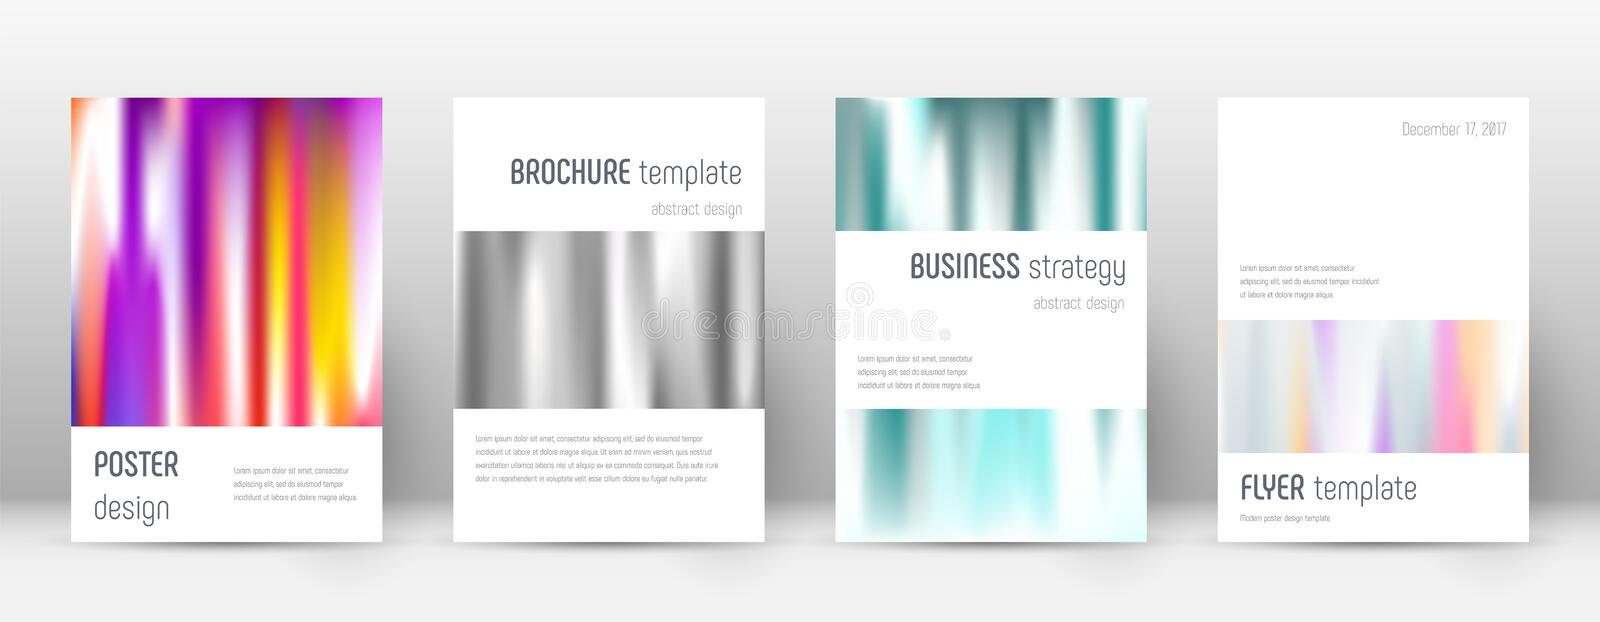 Flyer layout. Minimalistic exquisite template for. Brochure, Annual Report, Magazine, Poster, Corporate Presentation, Portfolio, Flyer. Astonishing lines cover vector illustration